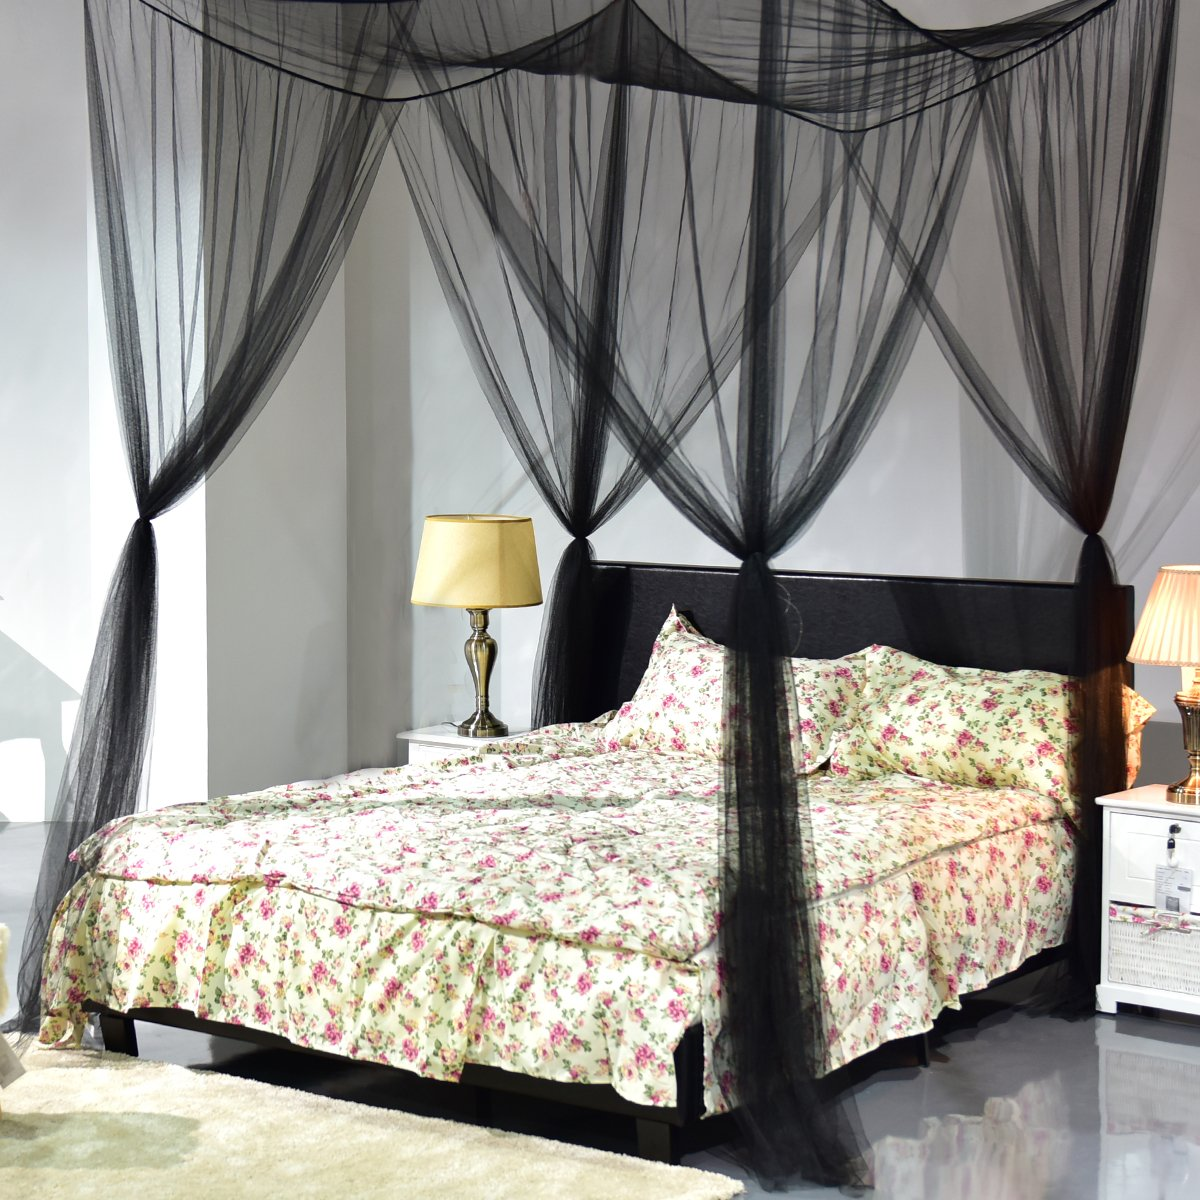 Super buy 4 Corner Post Bed Canopy Mosquito Net Full Queen King Size Netting Black Bedding COMINHKPR76953